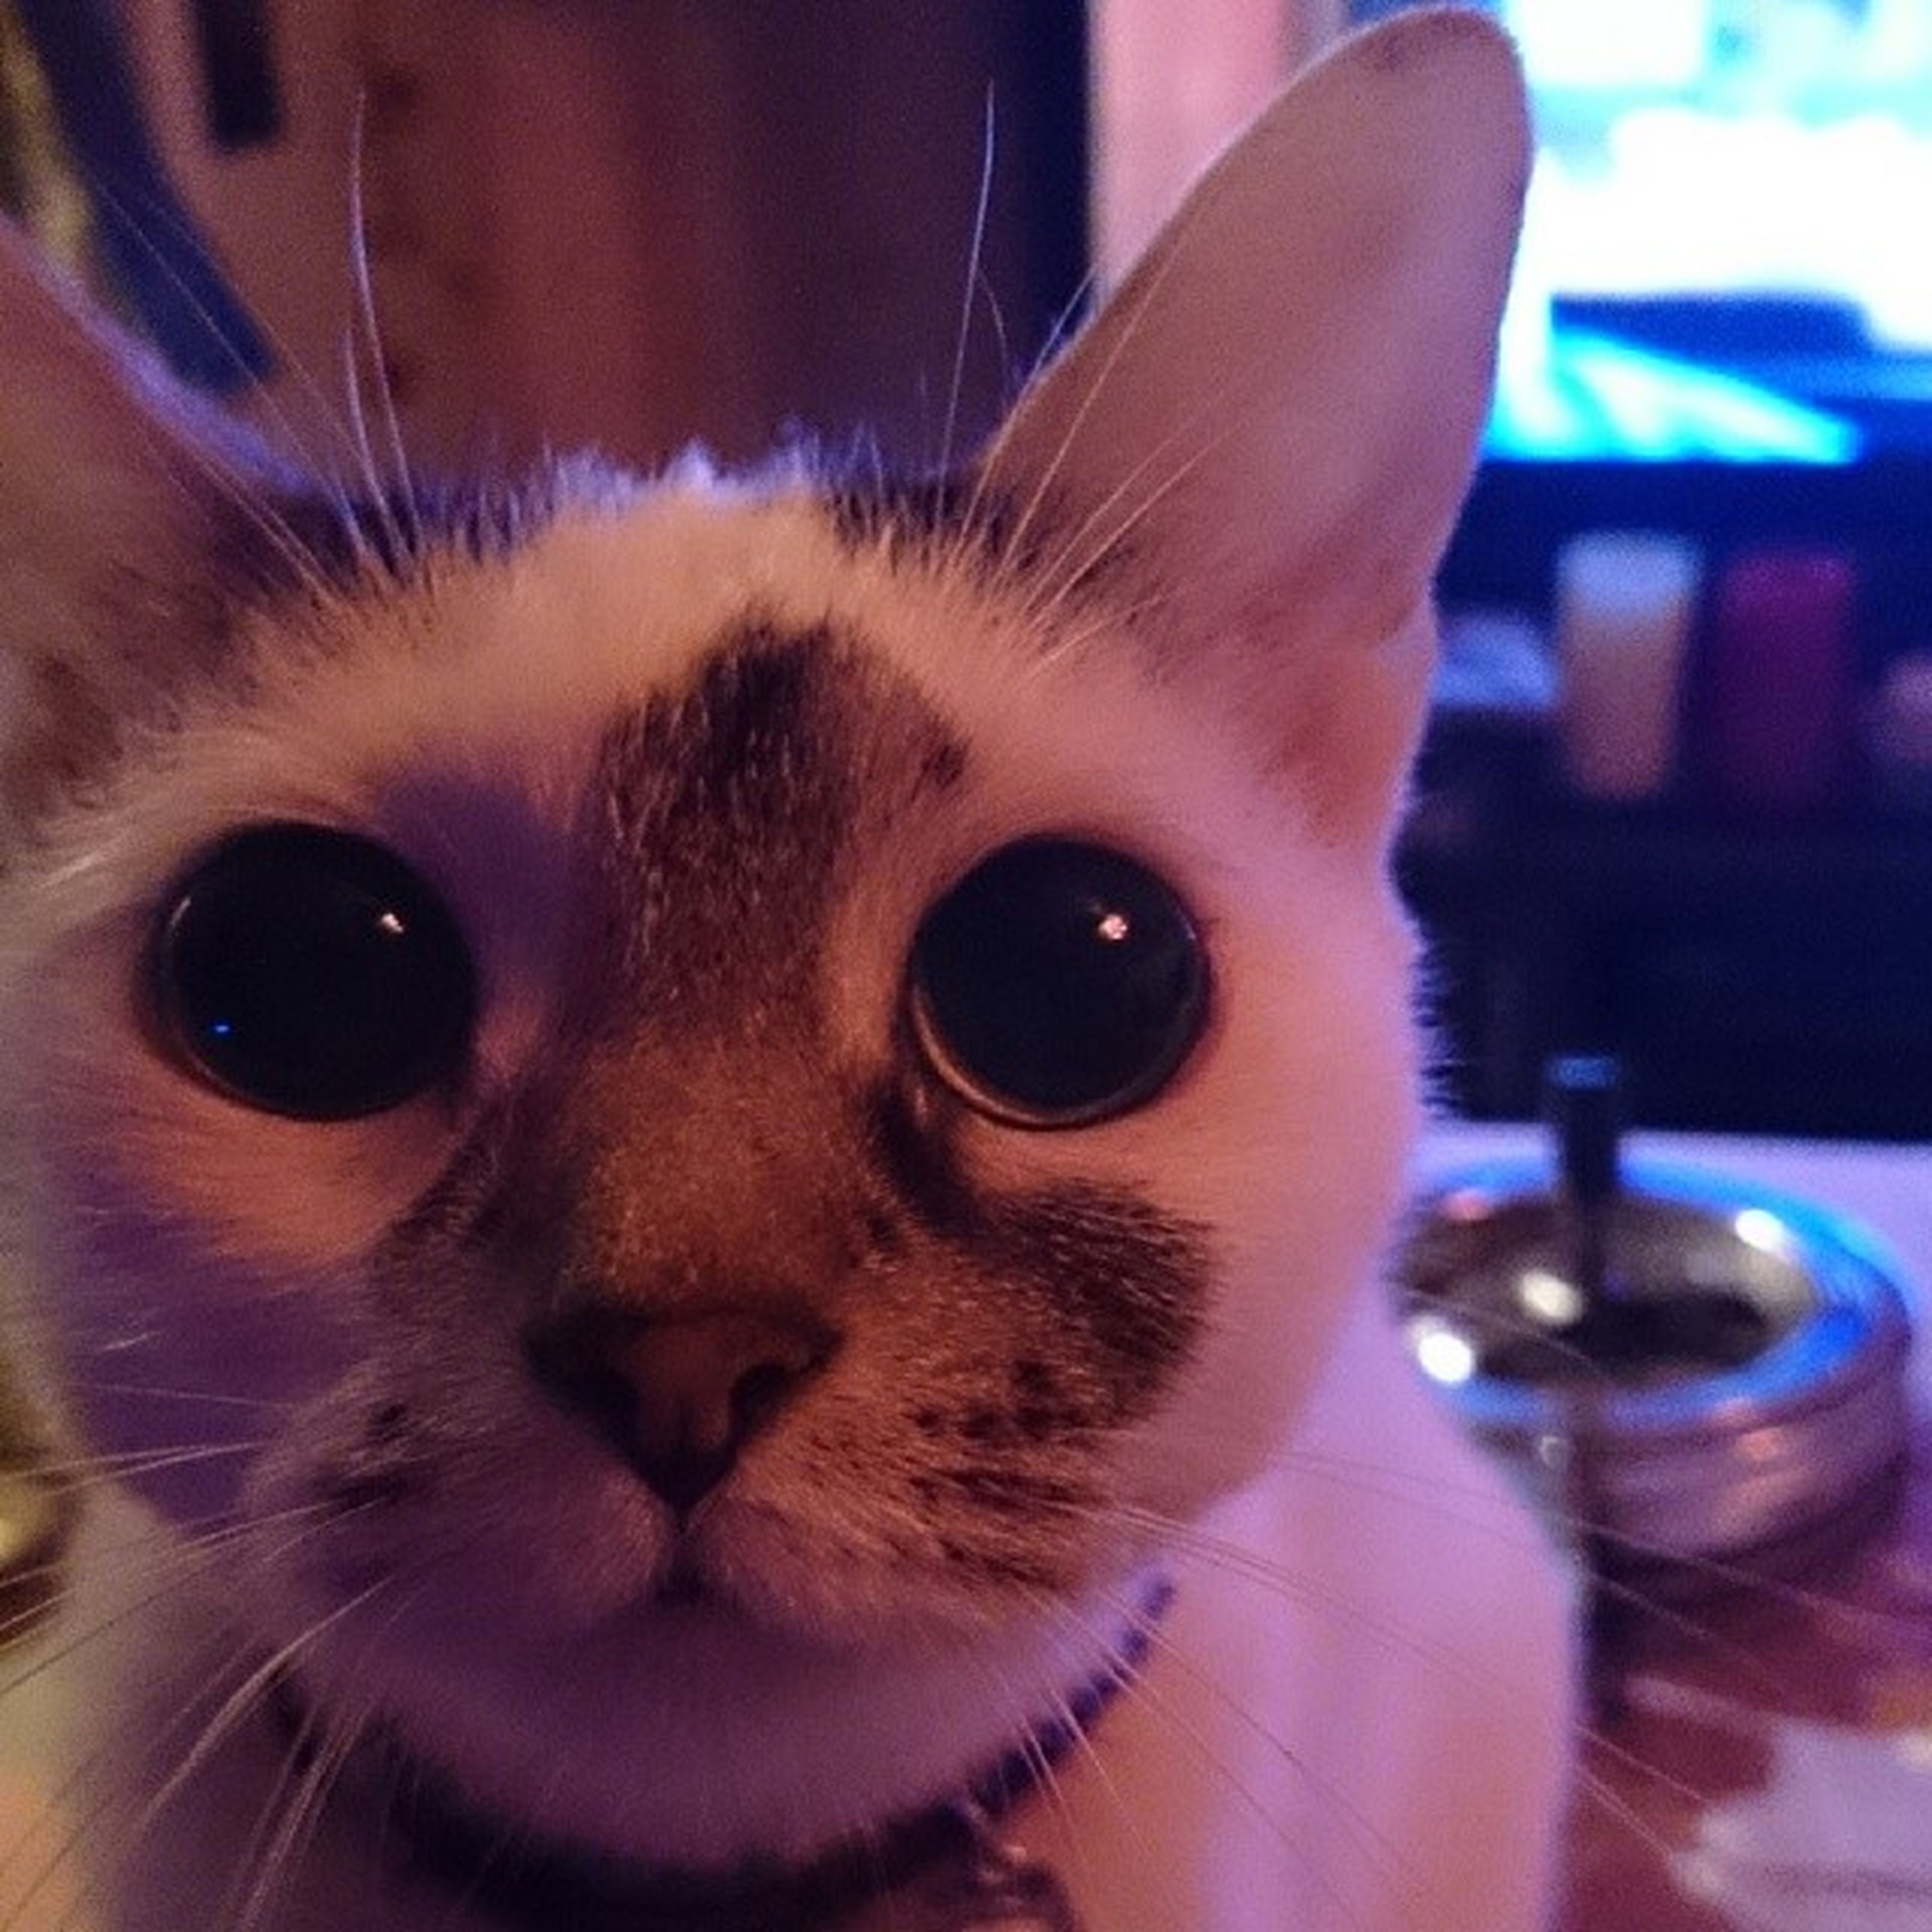 pets, domestic animals, one animal, animal themes, domestic cat, indoors, cat, looking at camera, portrait, mammal, whisker, feline, close-up, animal head, focus on foreground, animal eye, staring, part of, home interior, alertness